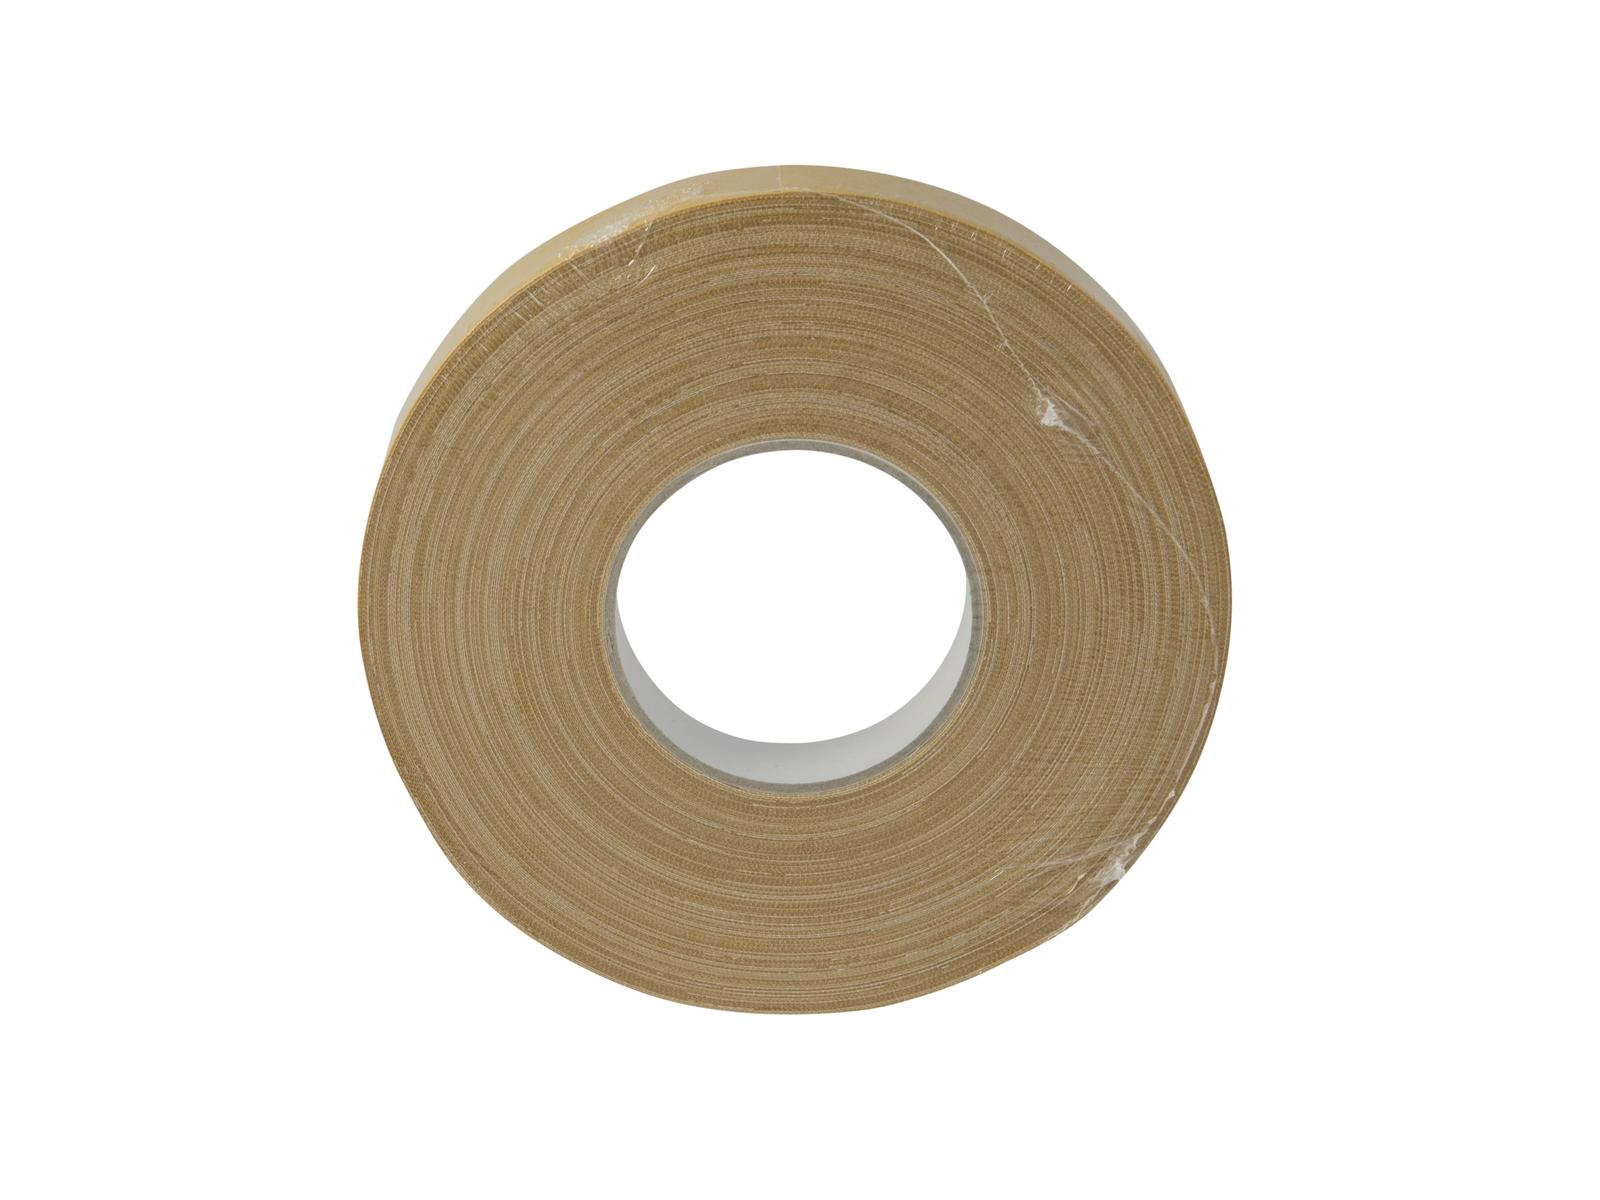 ACCESSORY Adhesive tape for carpet/carpet 25mmx50m